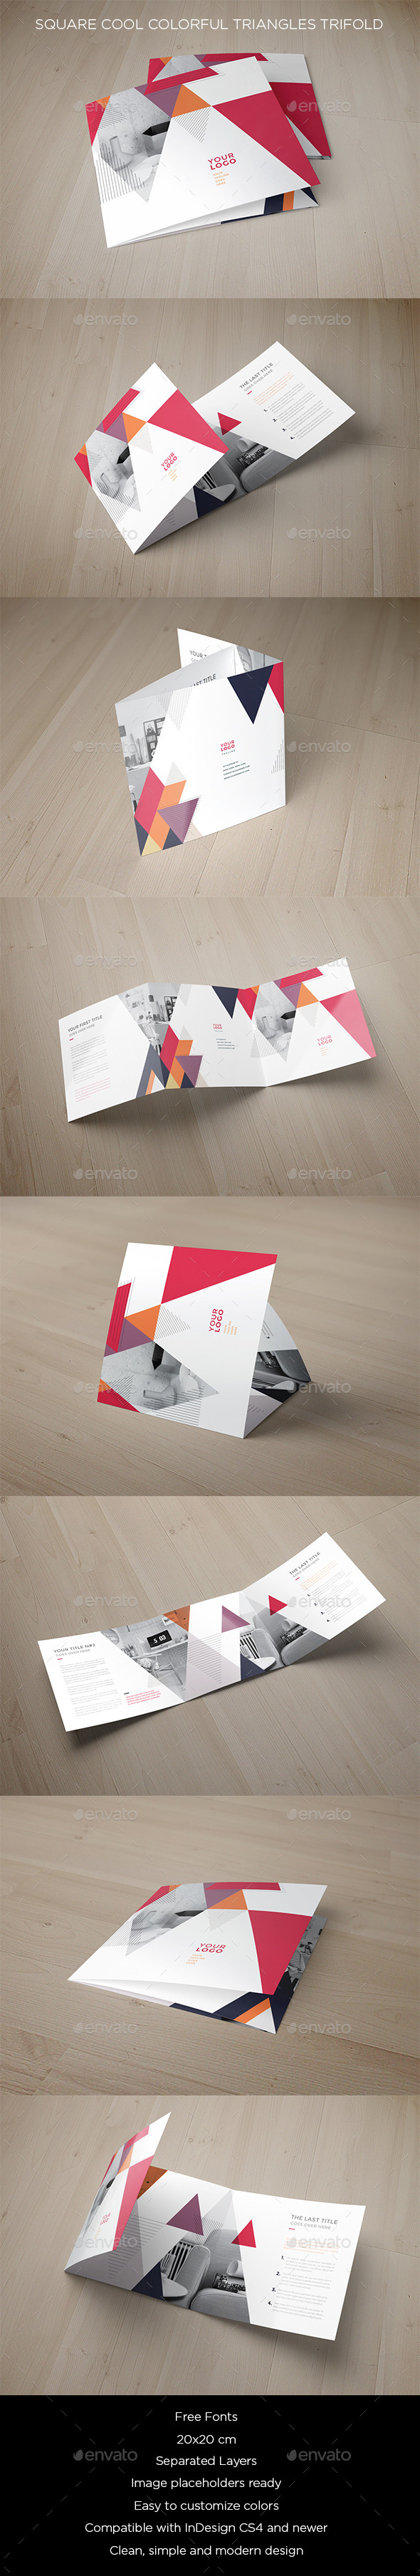 Square Cool Colorful Triangles Trifold - Brochures Print Templates